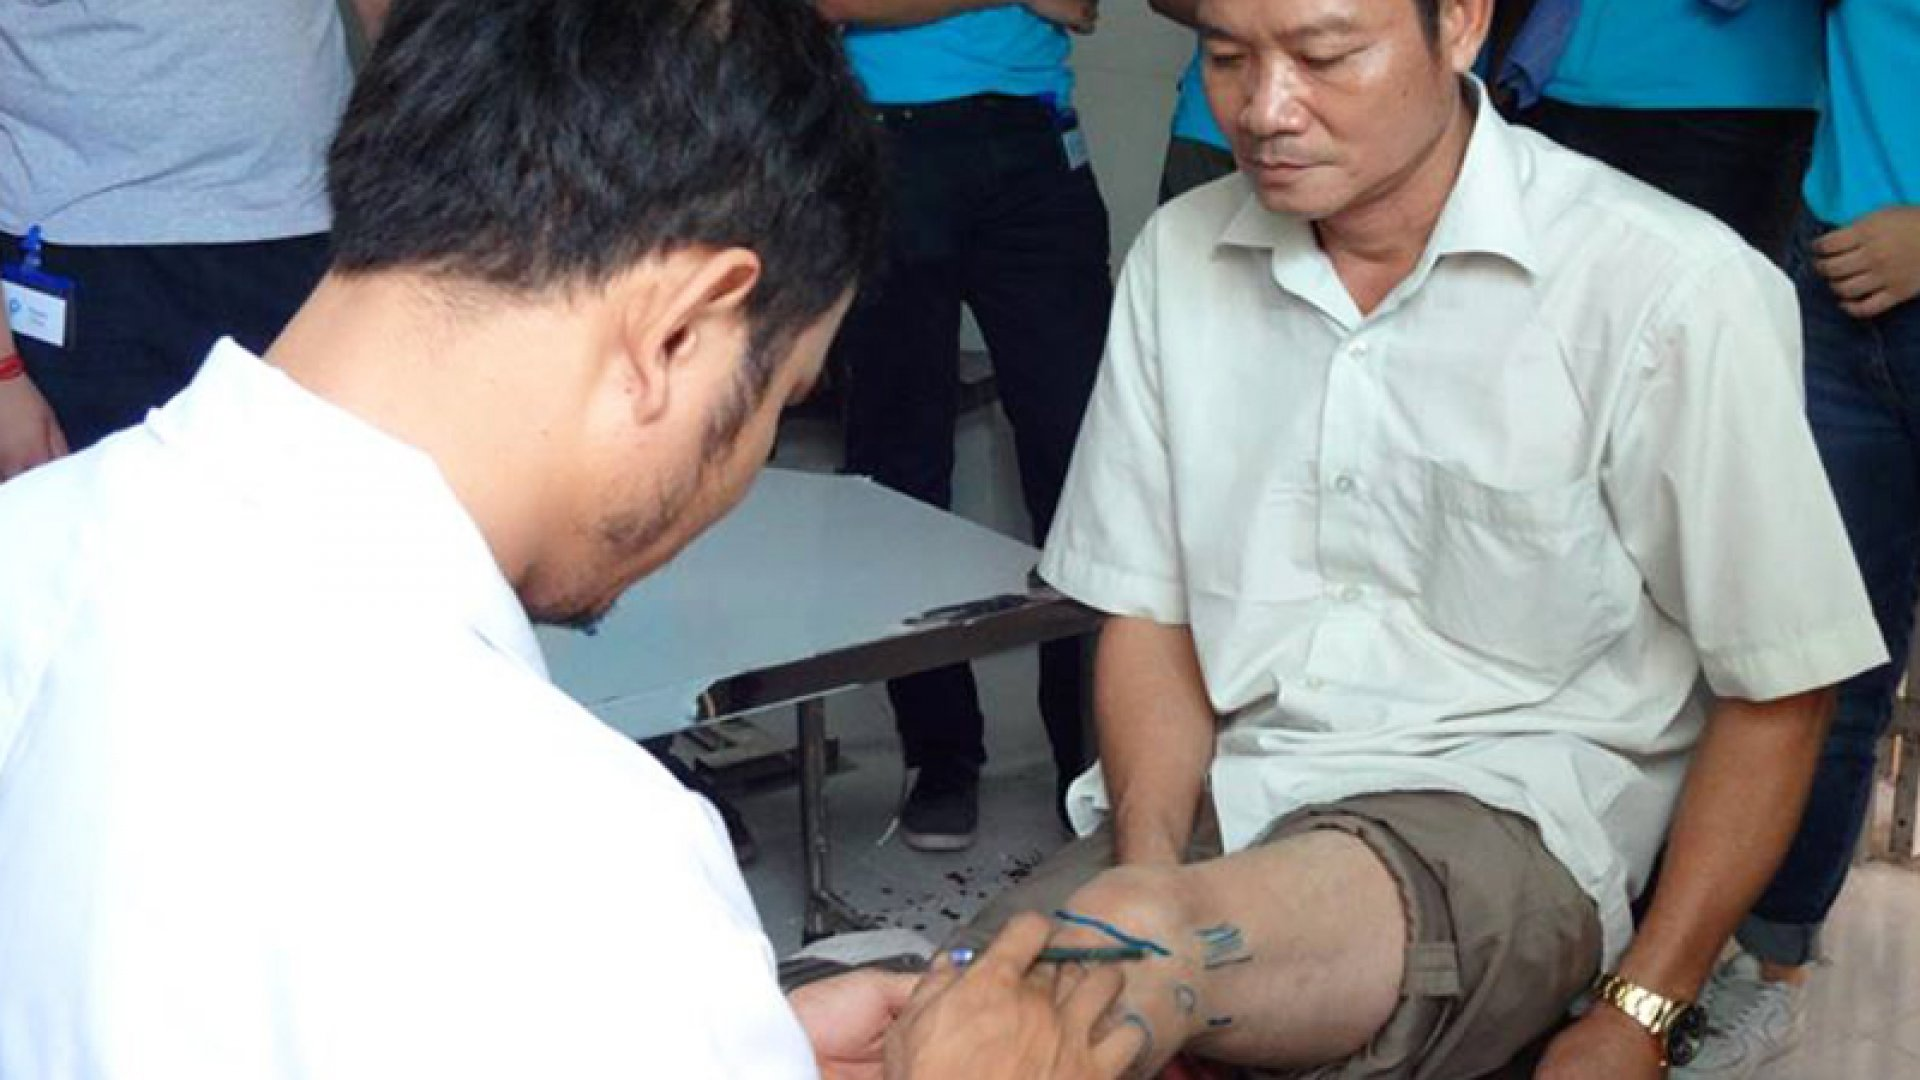 Man being fitted for a used prosthetic.